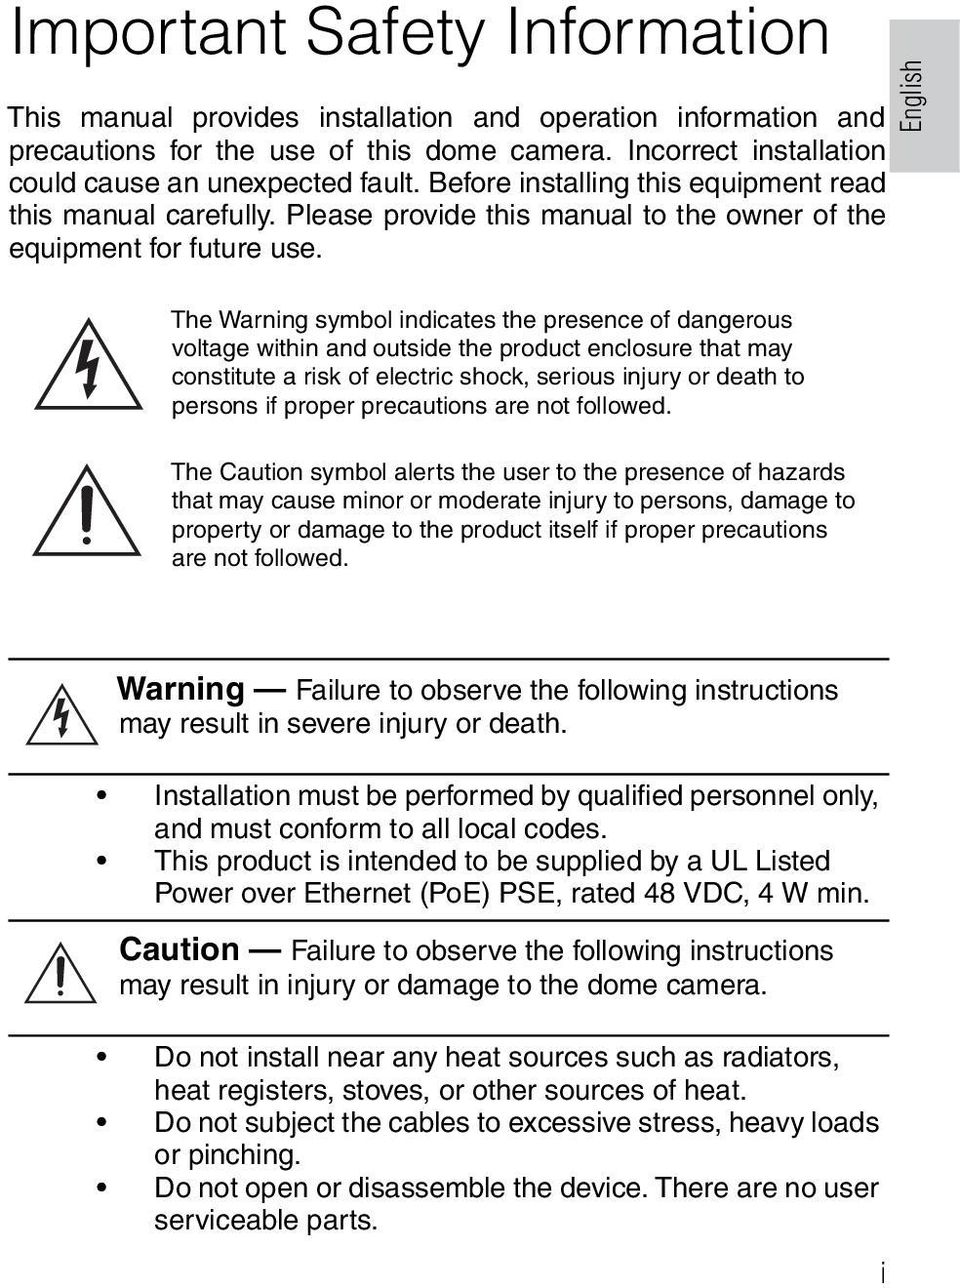 English The Warning symbol indicates the presence of dangerous voltage within and outside the product enclosure that may constitute a risk of electric shock, serious injury or death to persons if